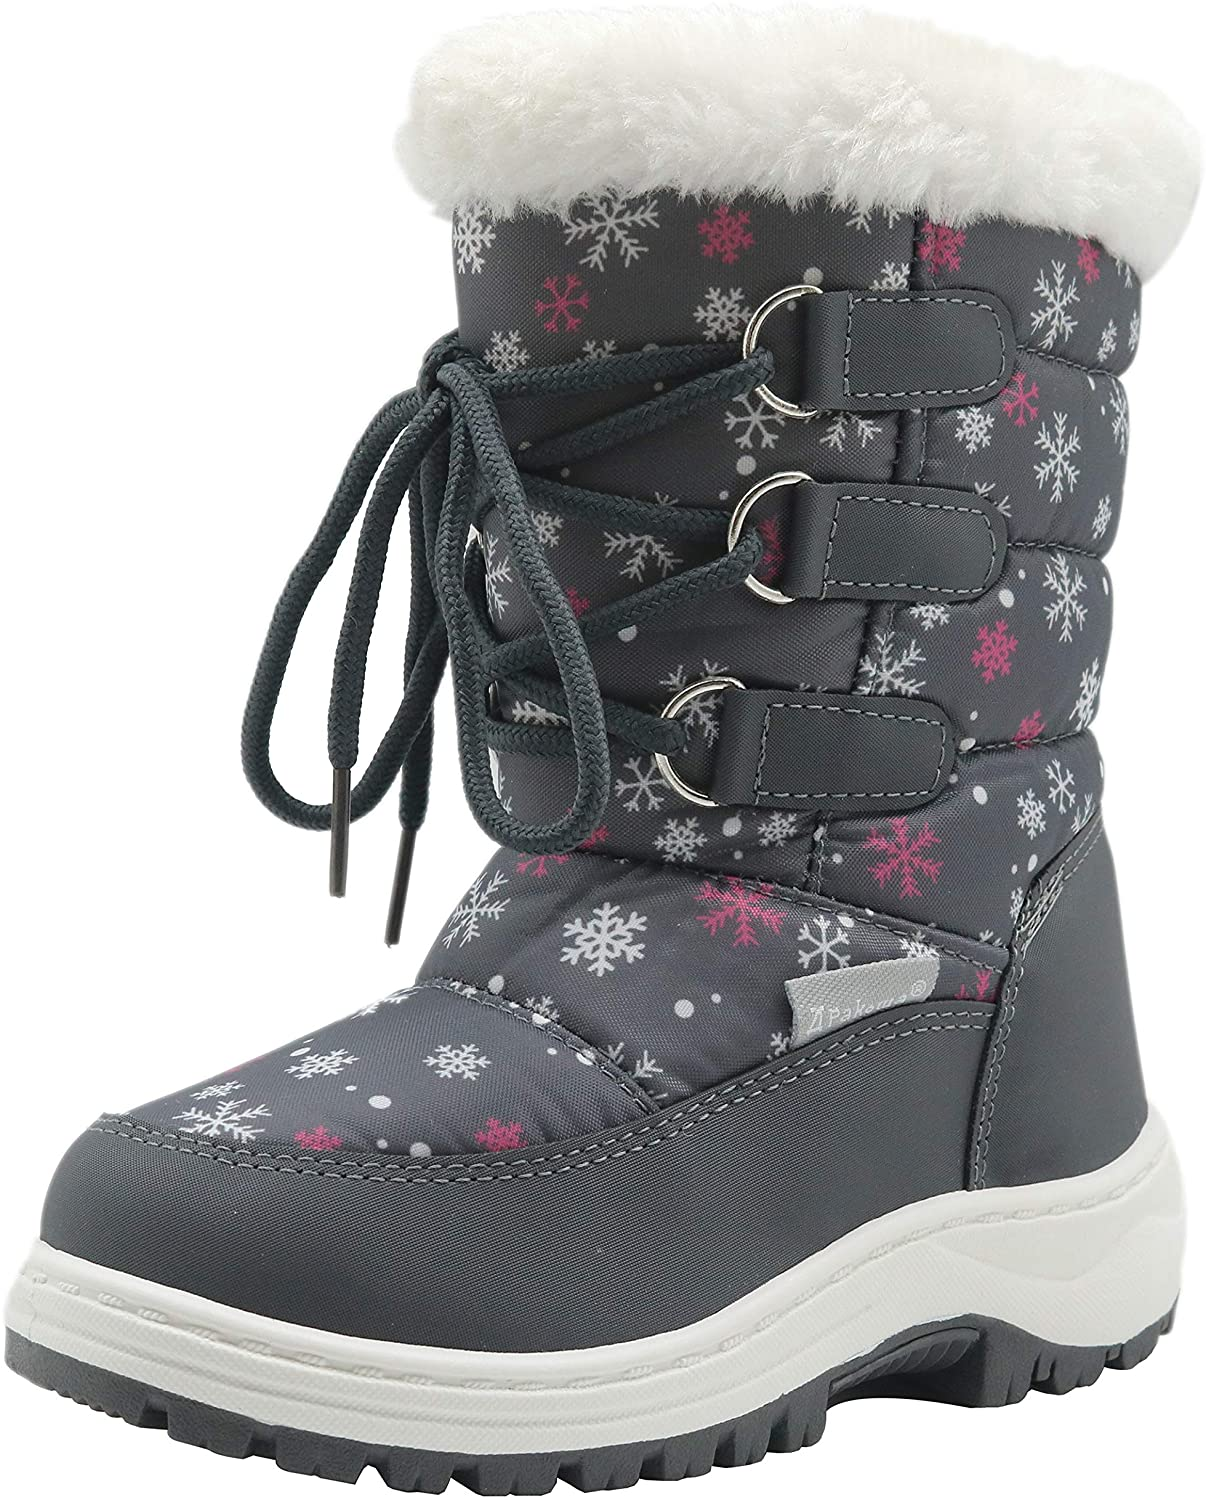 snow boots for kids girls